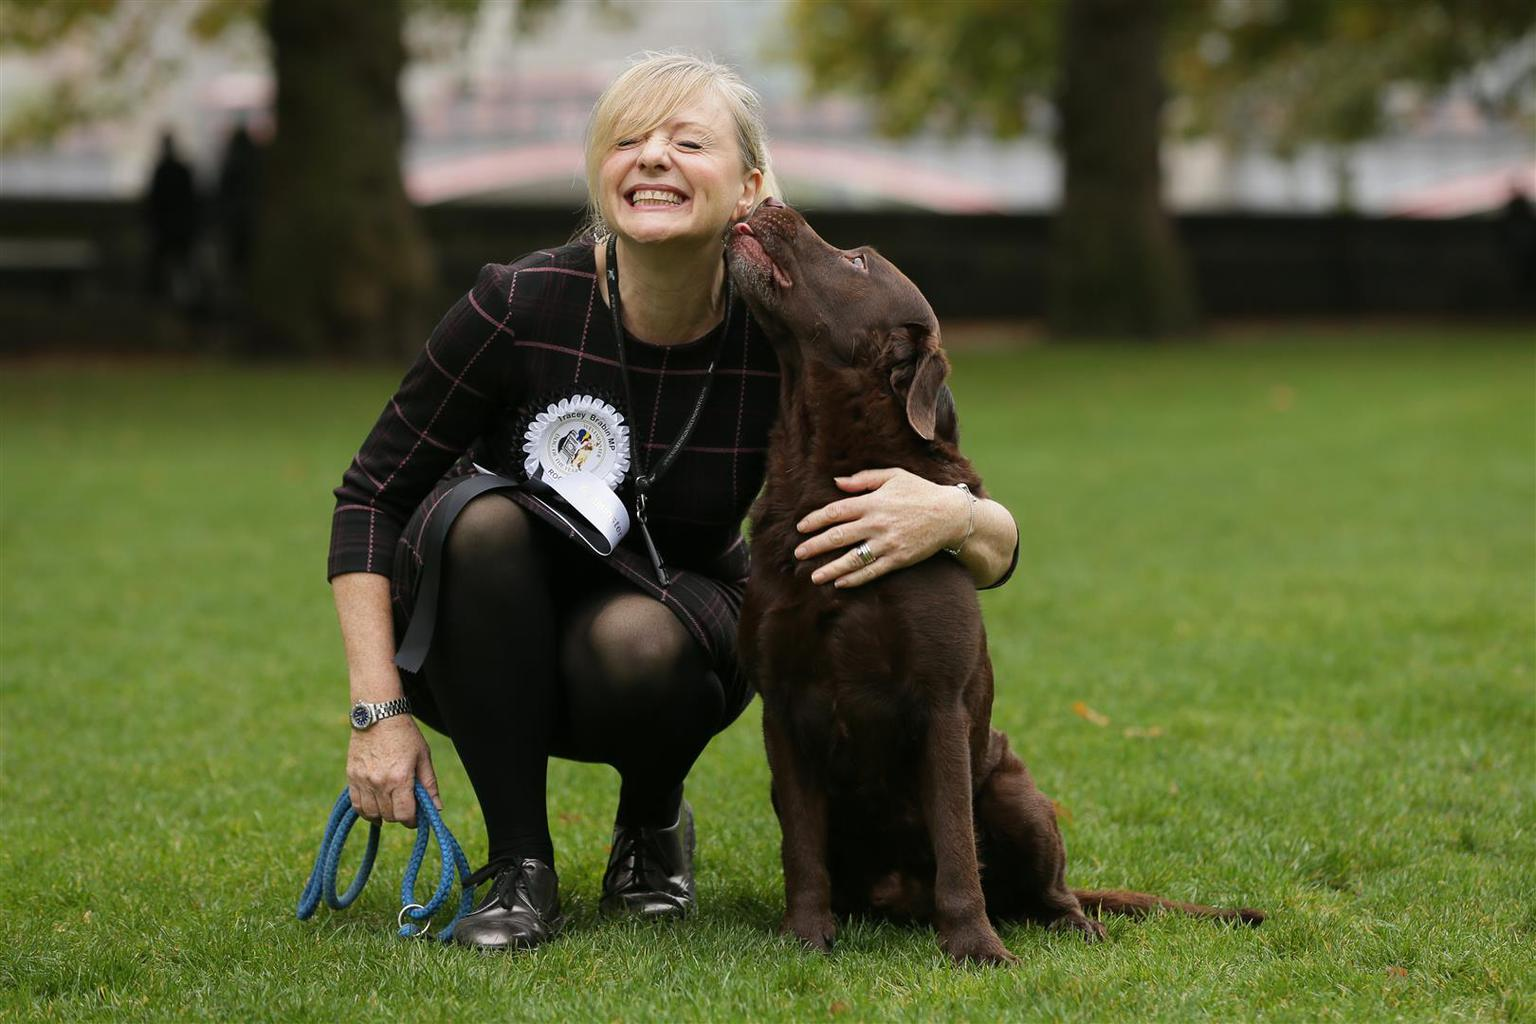 There was a worthy winner in Westminster today, as Rocky, a seven-year-old Labrador belonging to Batley and Spen Labour MP Tracy Brabin, was crowned 2017 Westminster Dog of the Year. Tags: dog Labrador Retriever Westminster Dog of the Year